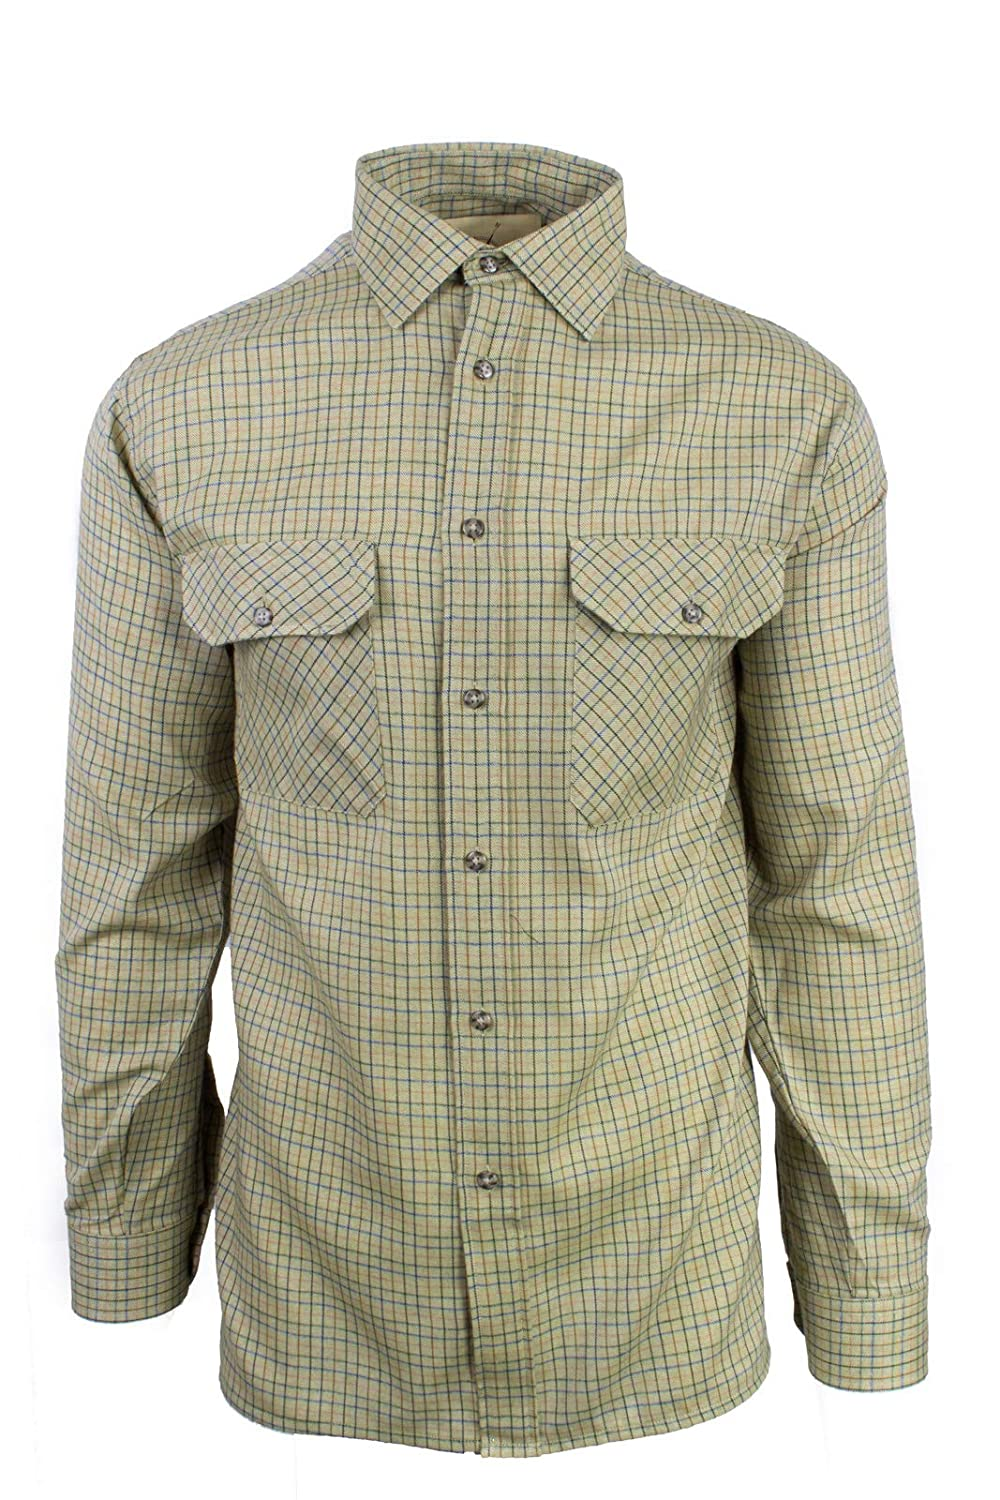 Fenside Country Clothing - Camisa Casual - Manga Larga - para Hombre  Amazon .es  Ropa y accesorios 2a779d03b4c